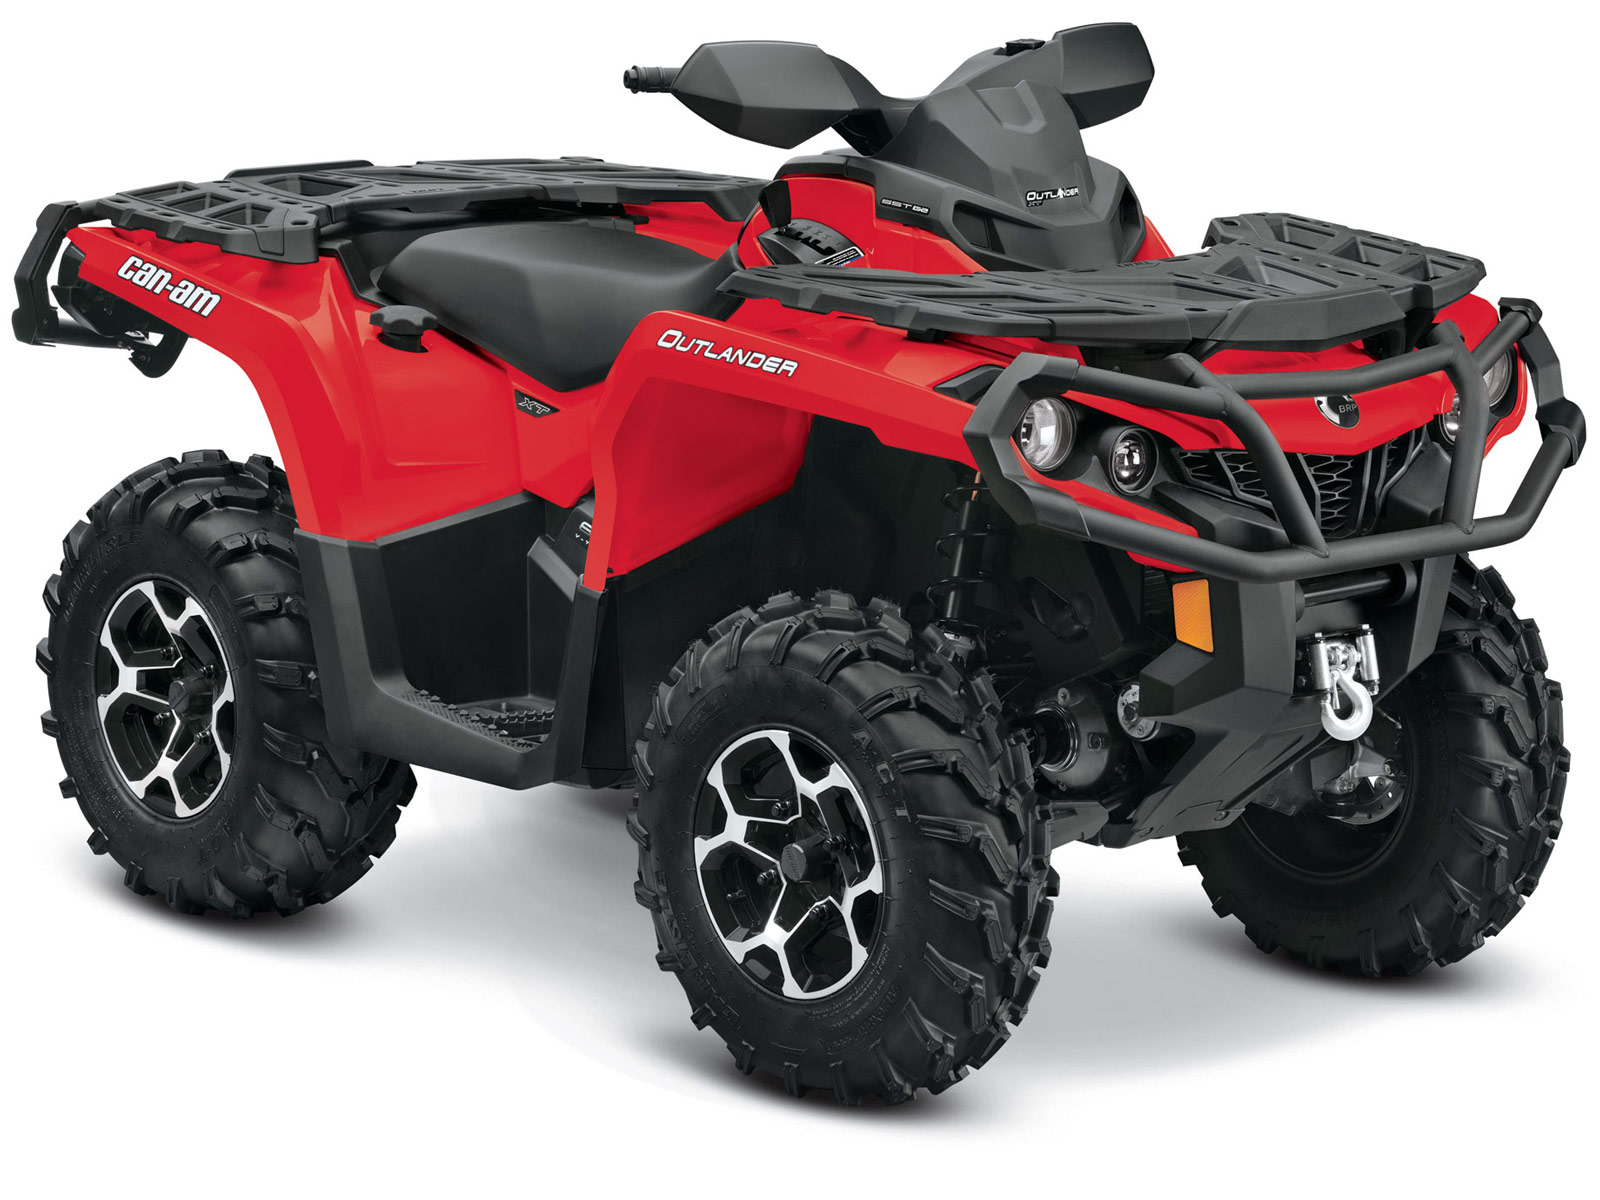 2013 can am atv pictures outlander xt 650 specifications. Black Bedroom Furniture Sets. Home Design Ideas